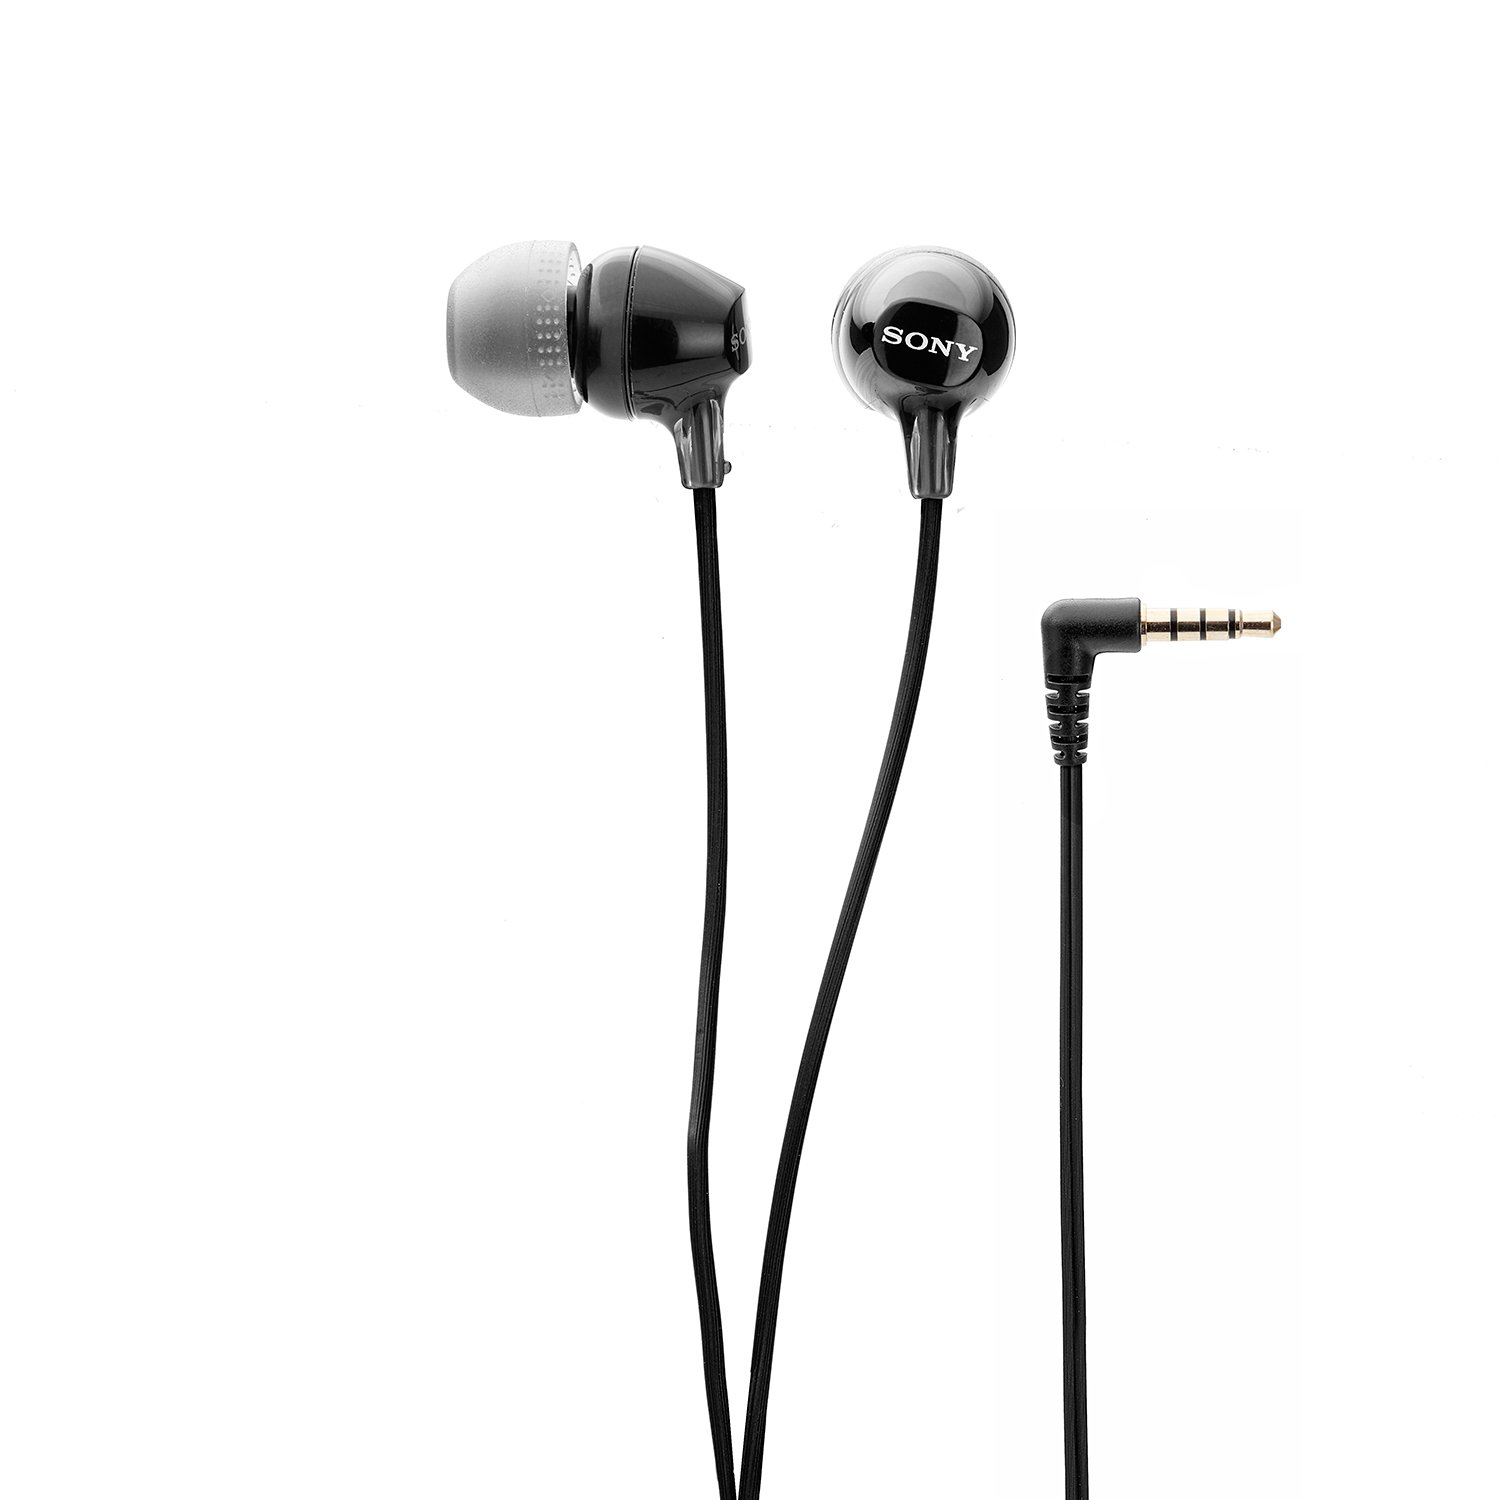 Sony MDR-EX15LP In-Ear Headphones (Black)